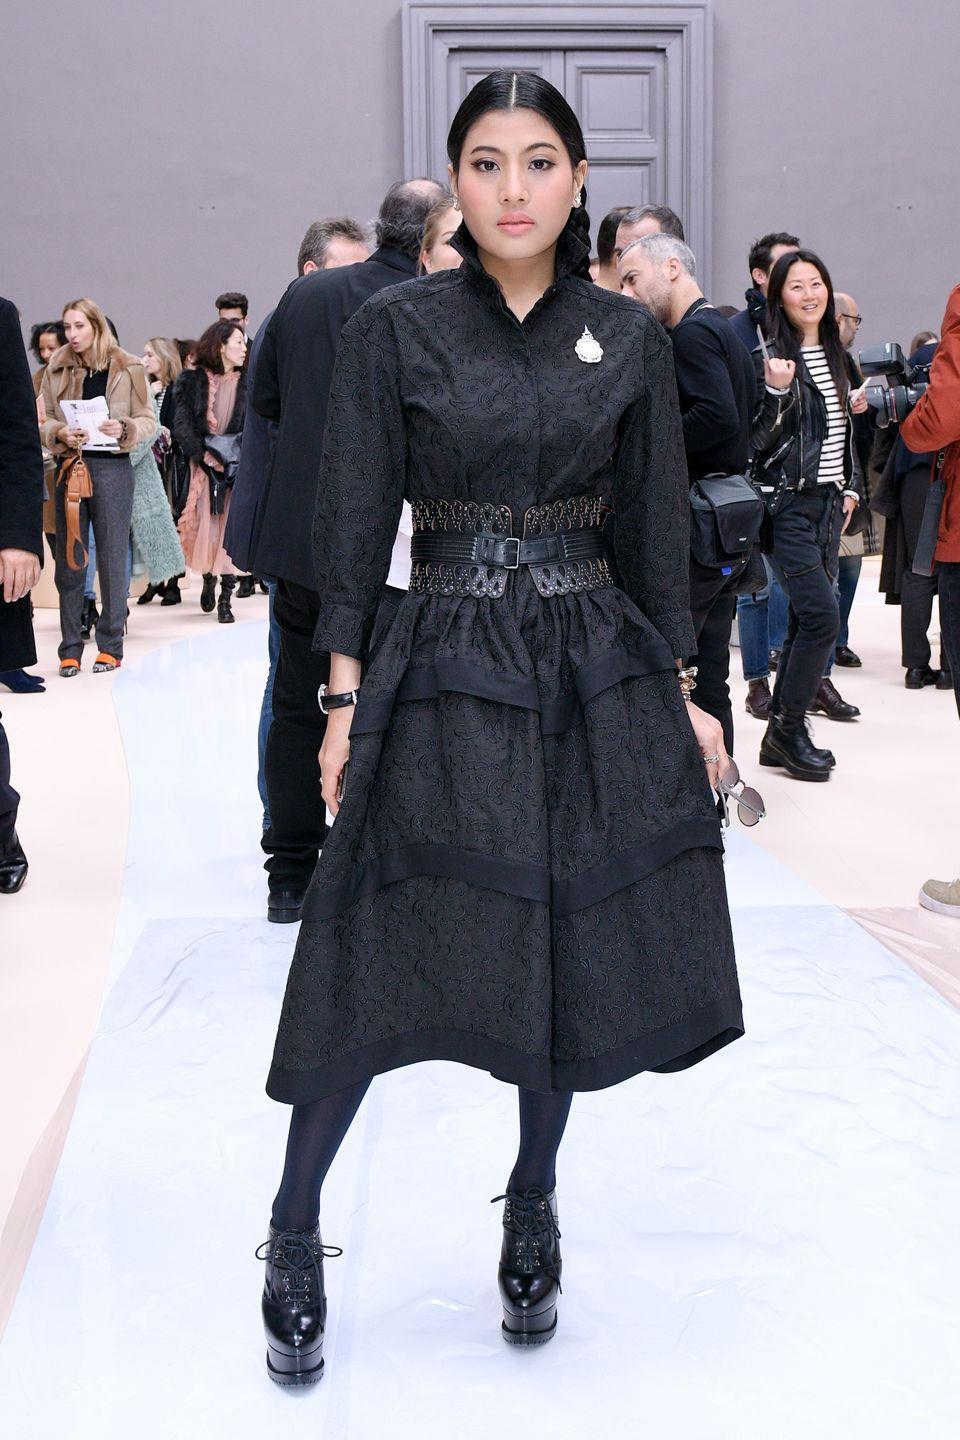 <p>Her Royal Highness made her Paris Fashion Week debut in 2007 when she accepted an invitation from Pierre Balmain to present her own collection. The 30-year-old princess is still a regular during fashion week season, bringing her sleek style in names like Dior, Chloé, Elie Saab, and Giambattista Valli.</p>